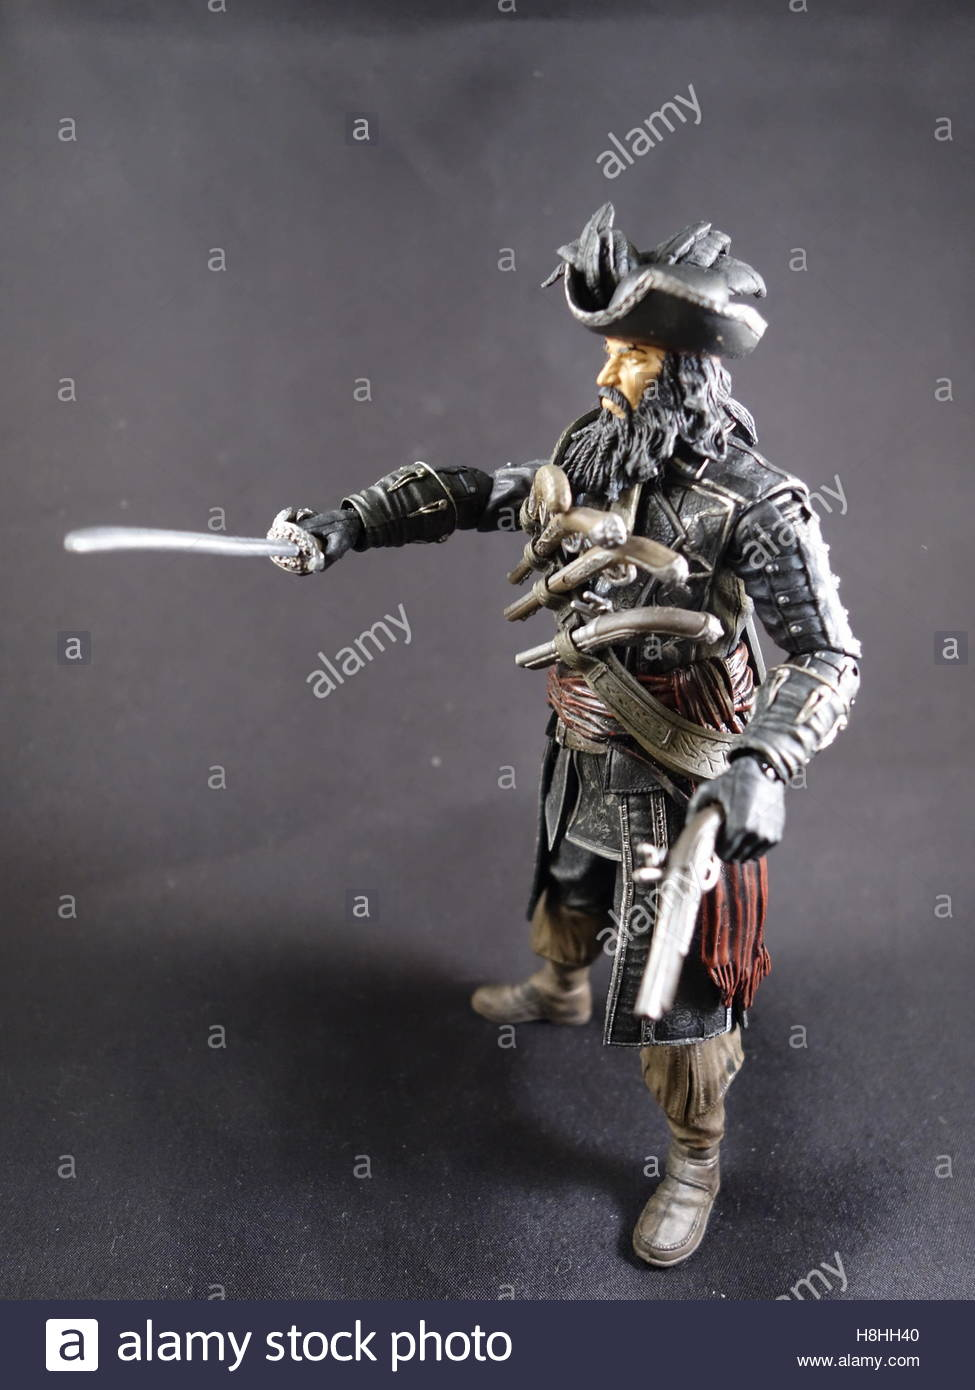 Mcfarlane Assassins Creed Black Flag Pirate action figure - Stock Image